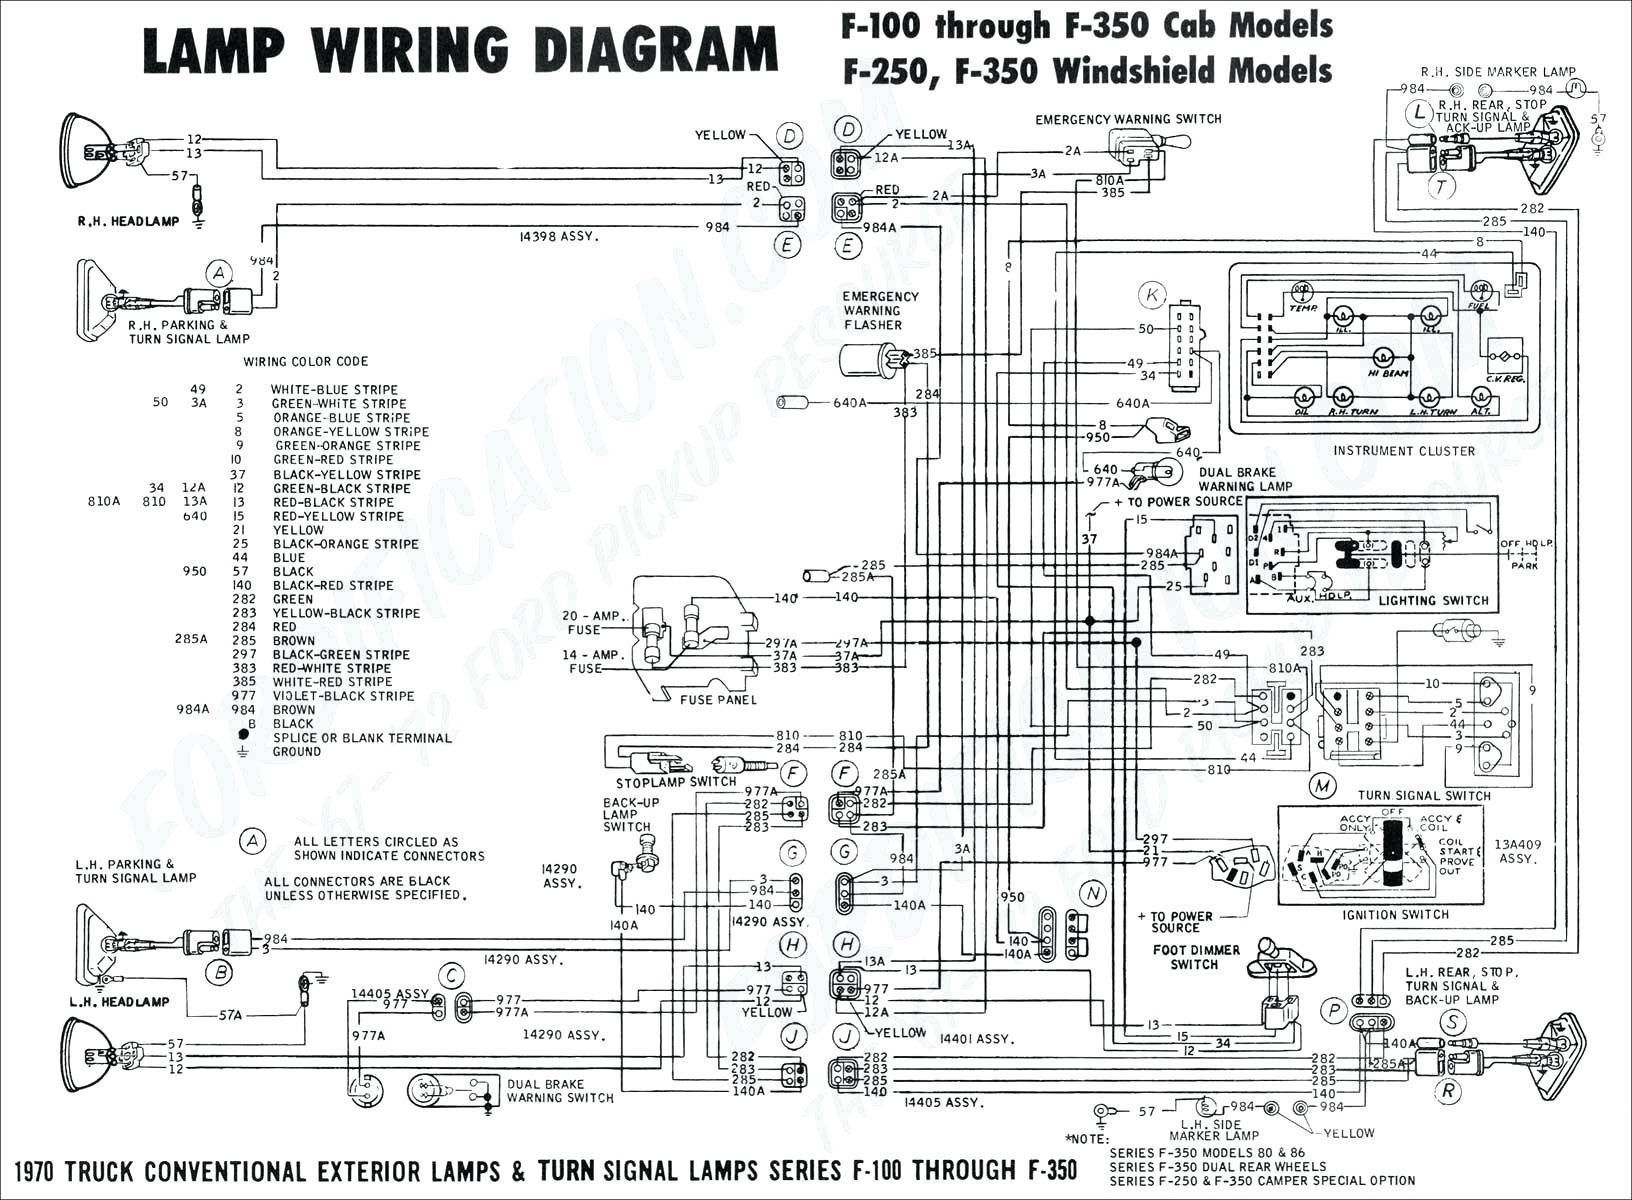 Dodge Ram Van 1500 Engine Diagram 1996 3 9 1996 Wiring Diagrams Fame Site A Fame Site A Alcuoredeldiabete It